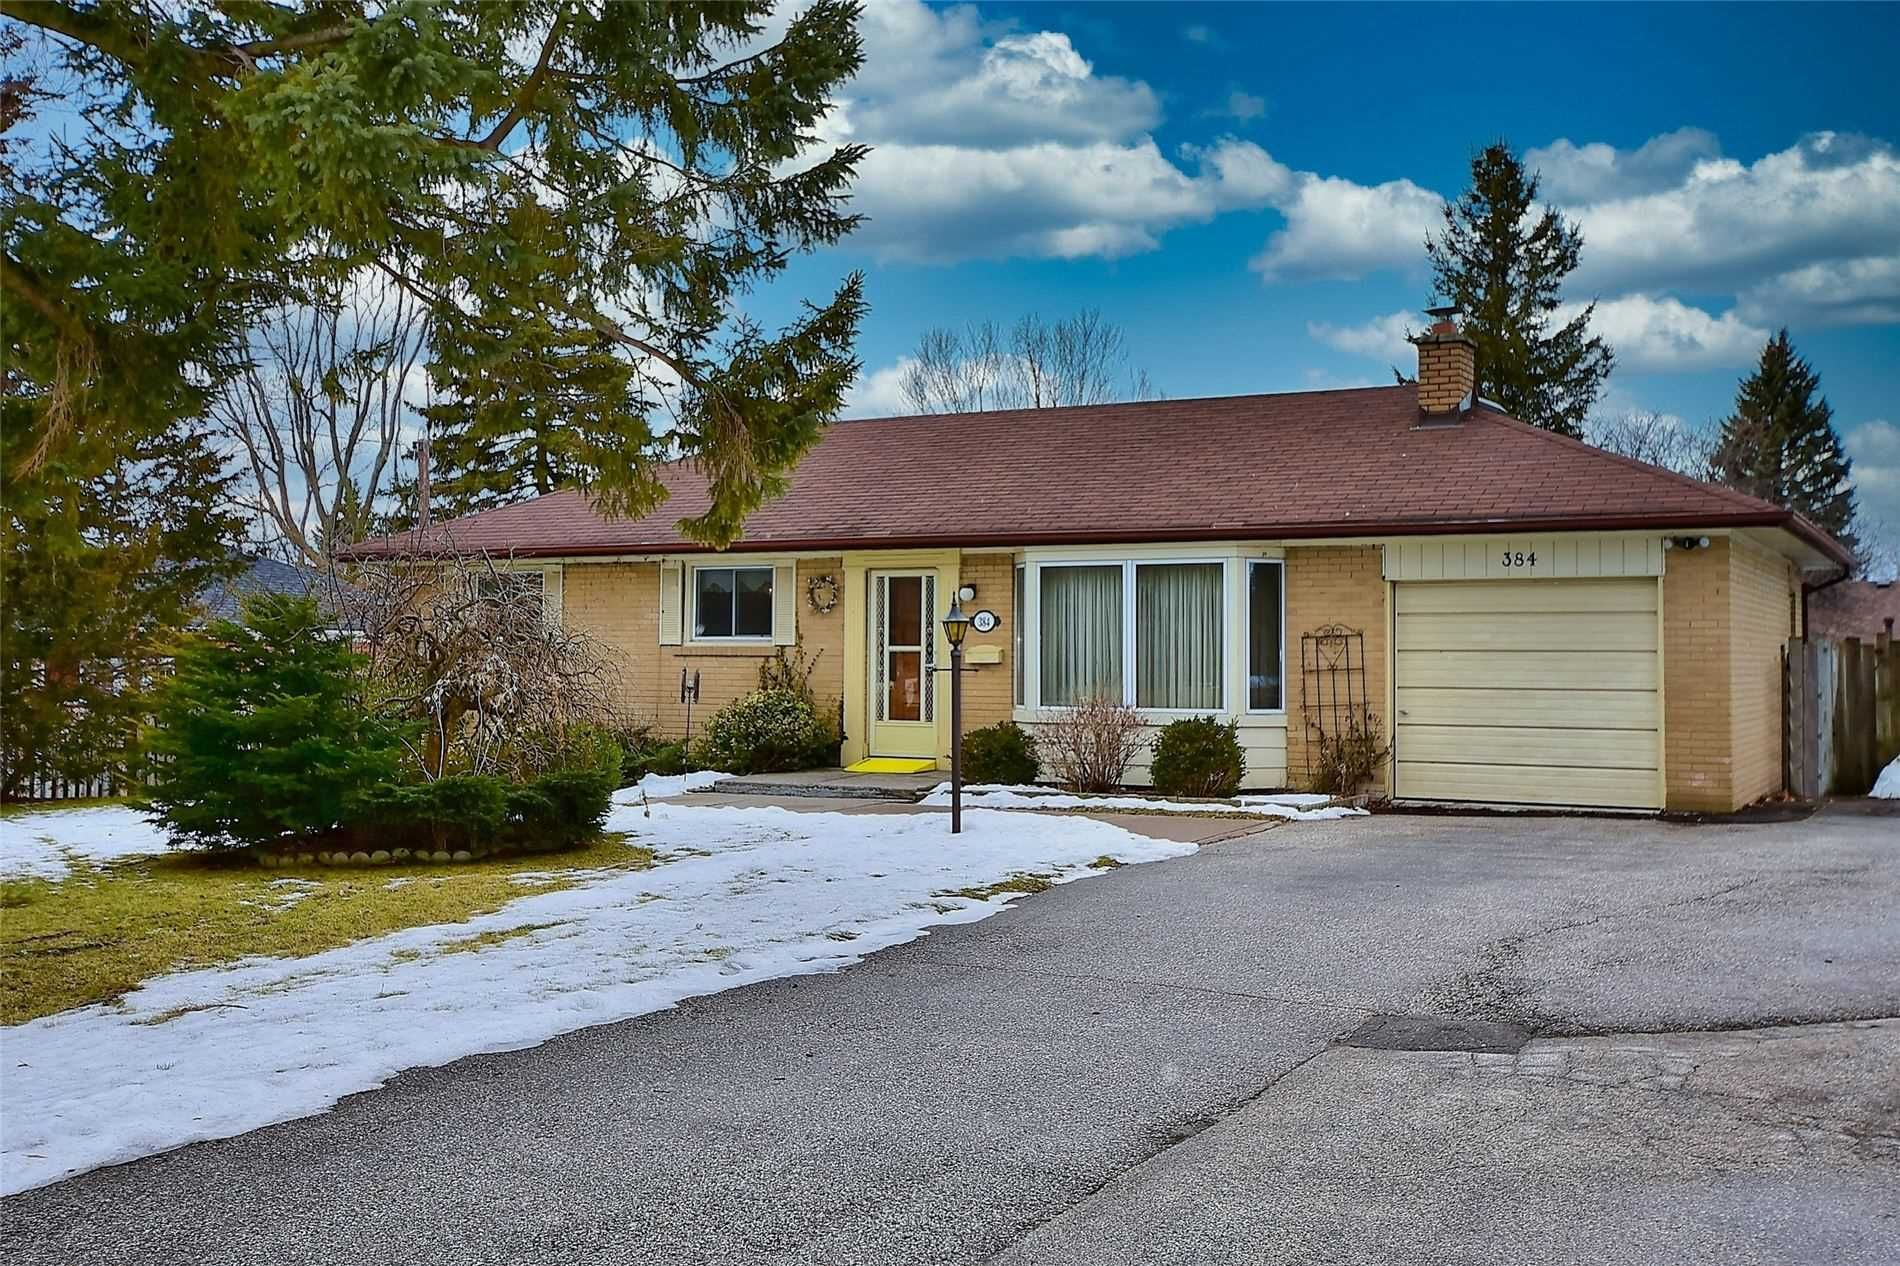 Main Photo: 384 Rouge Highlands Drive in Toronto: Rouge E10 House (Bungalow) for sale (Toronto E10)  : MLS®# E4679326